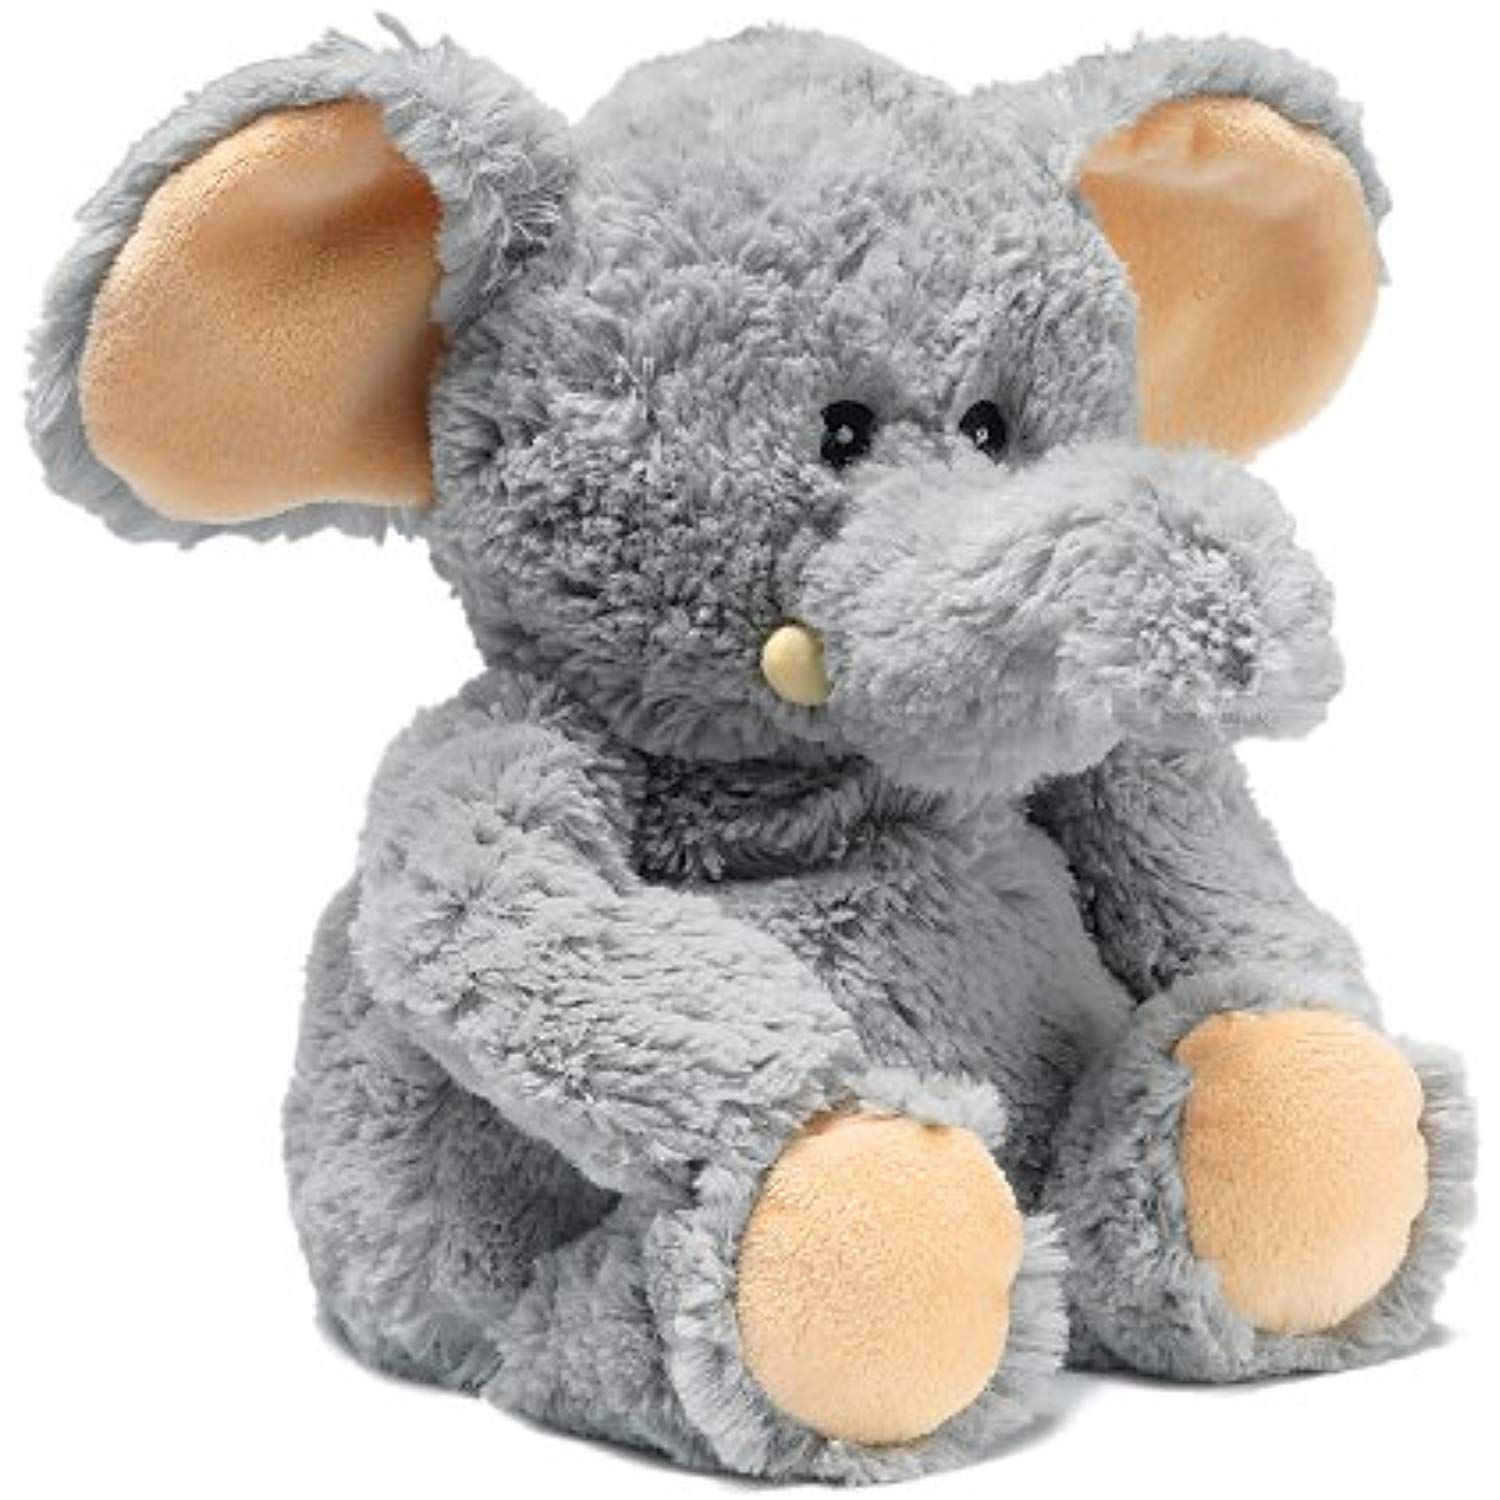 Intelex Cozy Plush Microwaveable Warmer Elephant